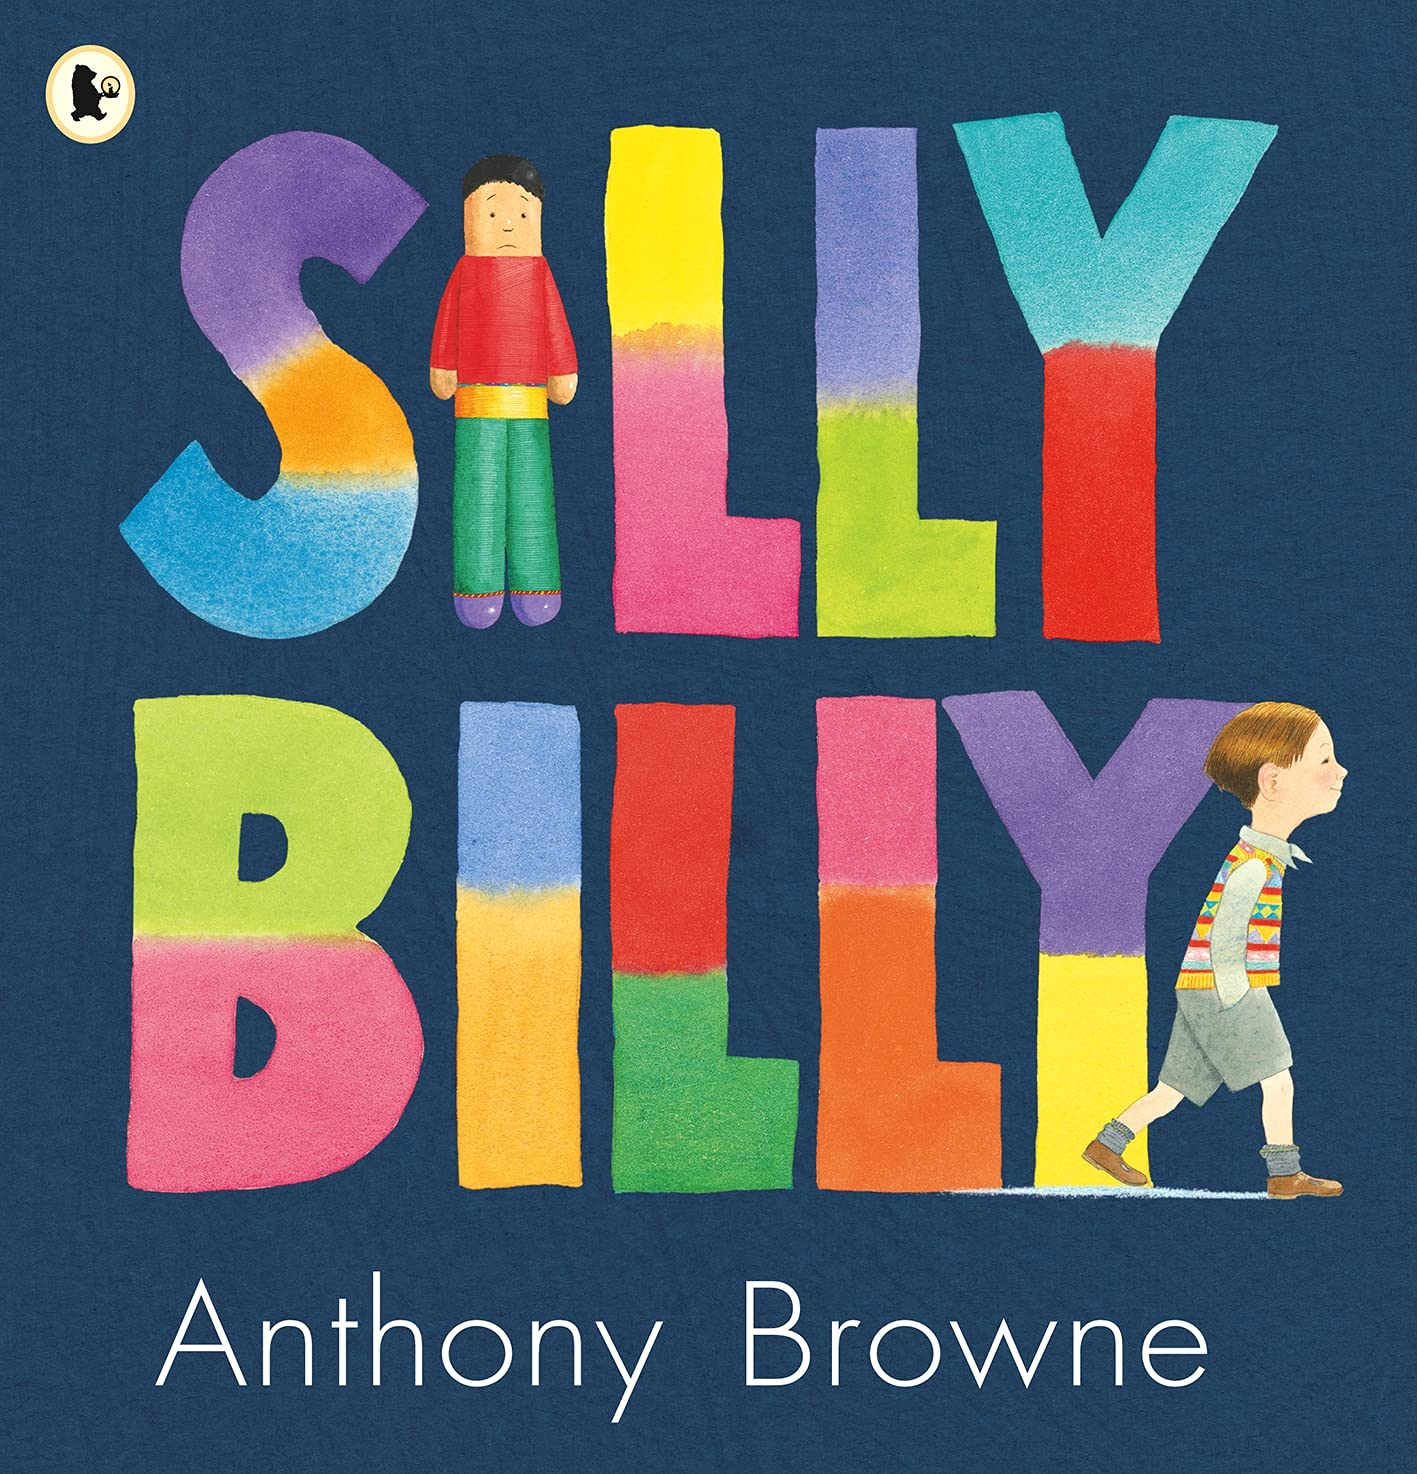 Silly Billy: Amazon.co.uk: Browne, Anthony, Browne, Anthony: 8601404237713:  Books